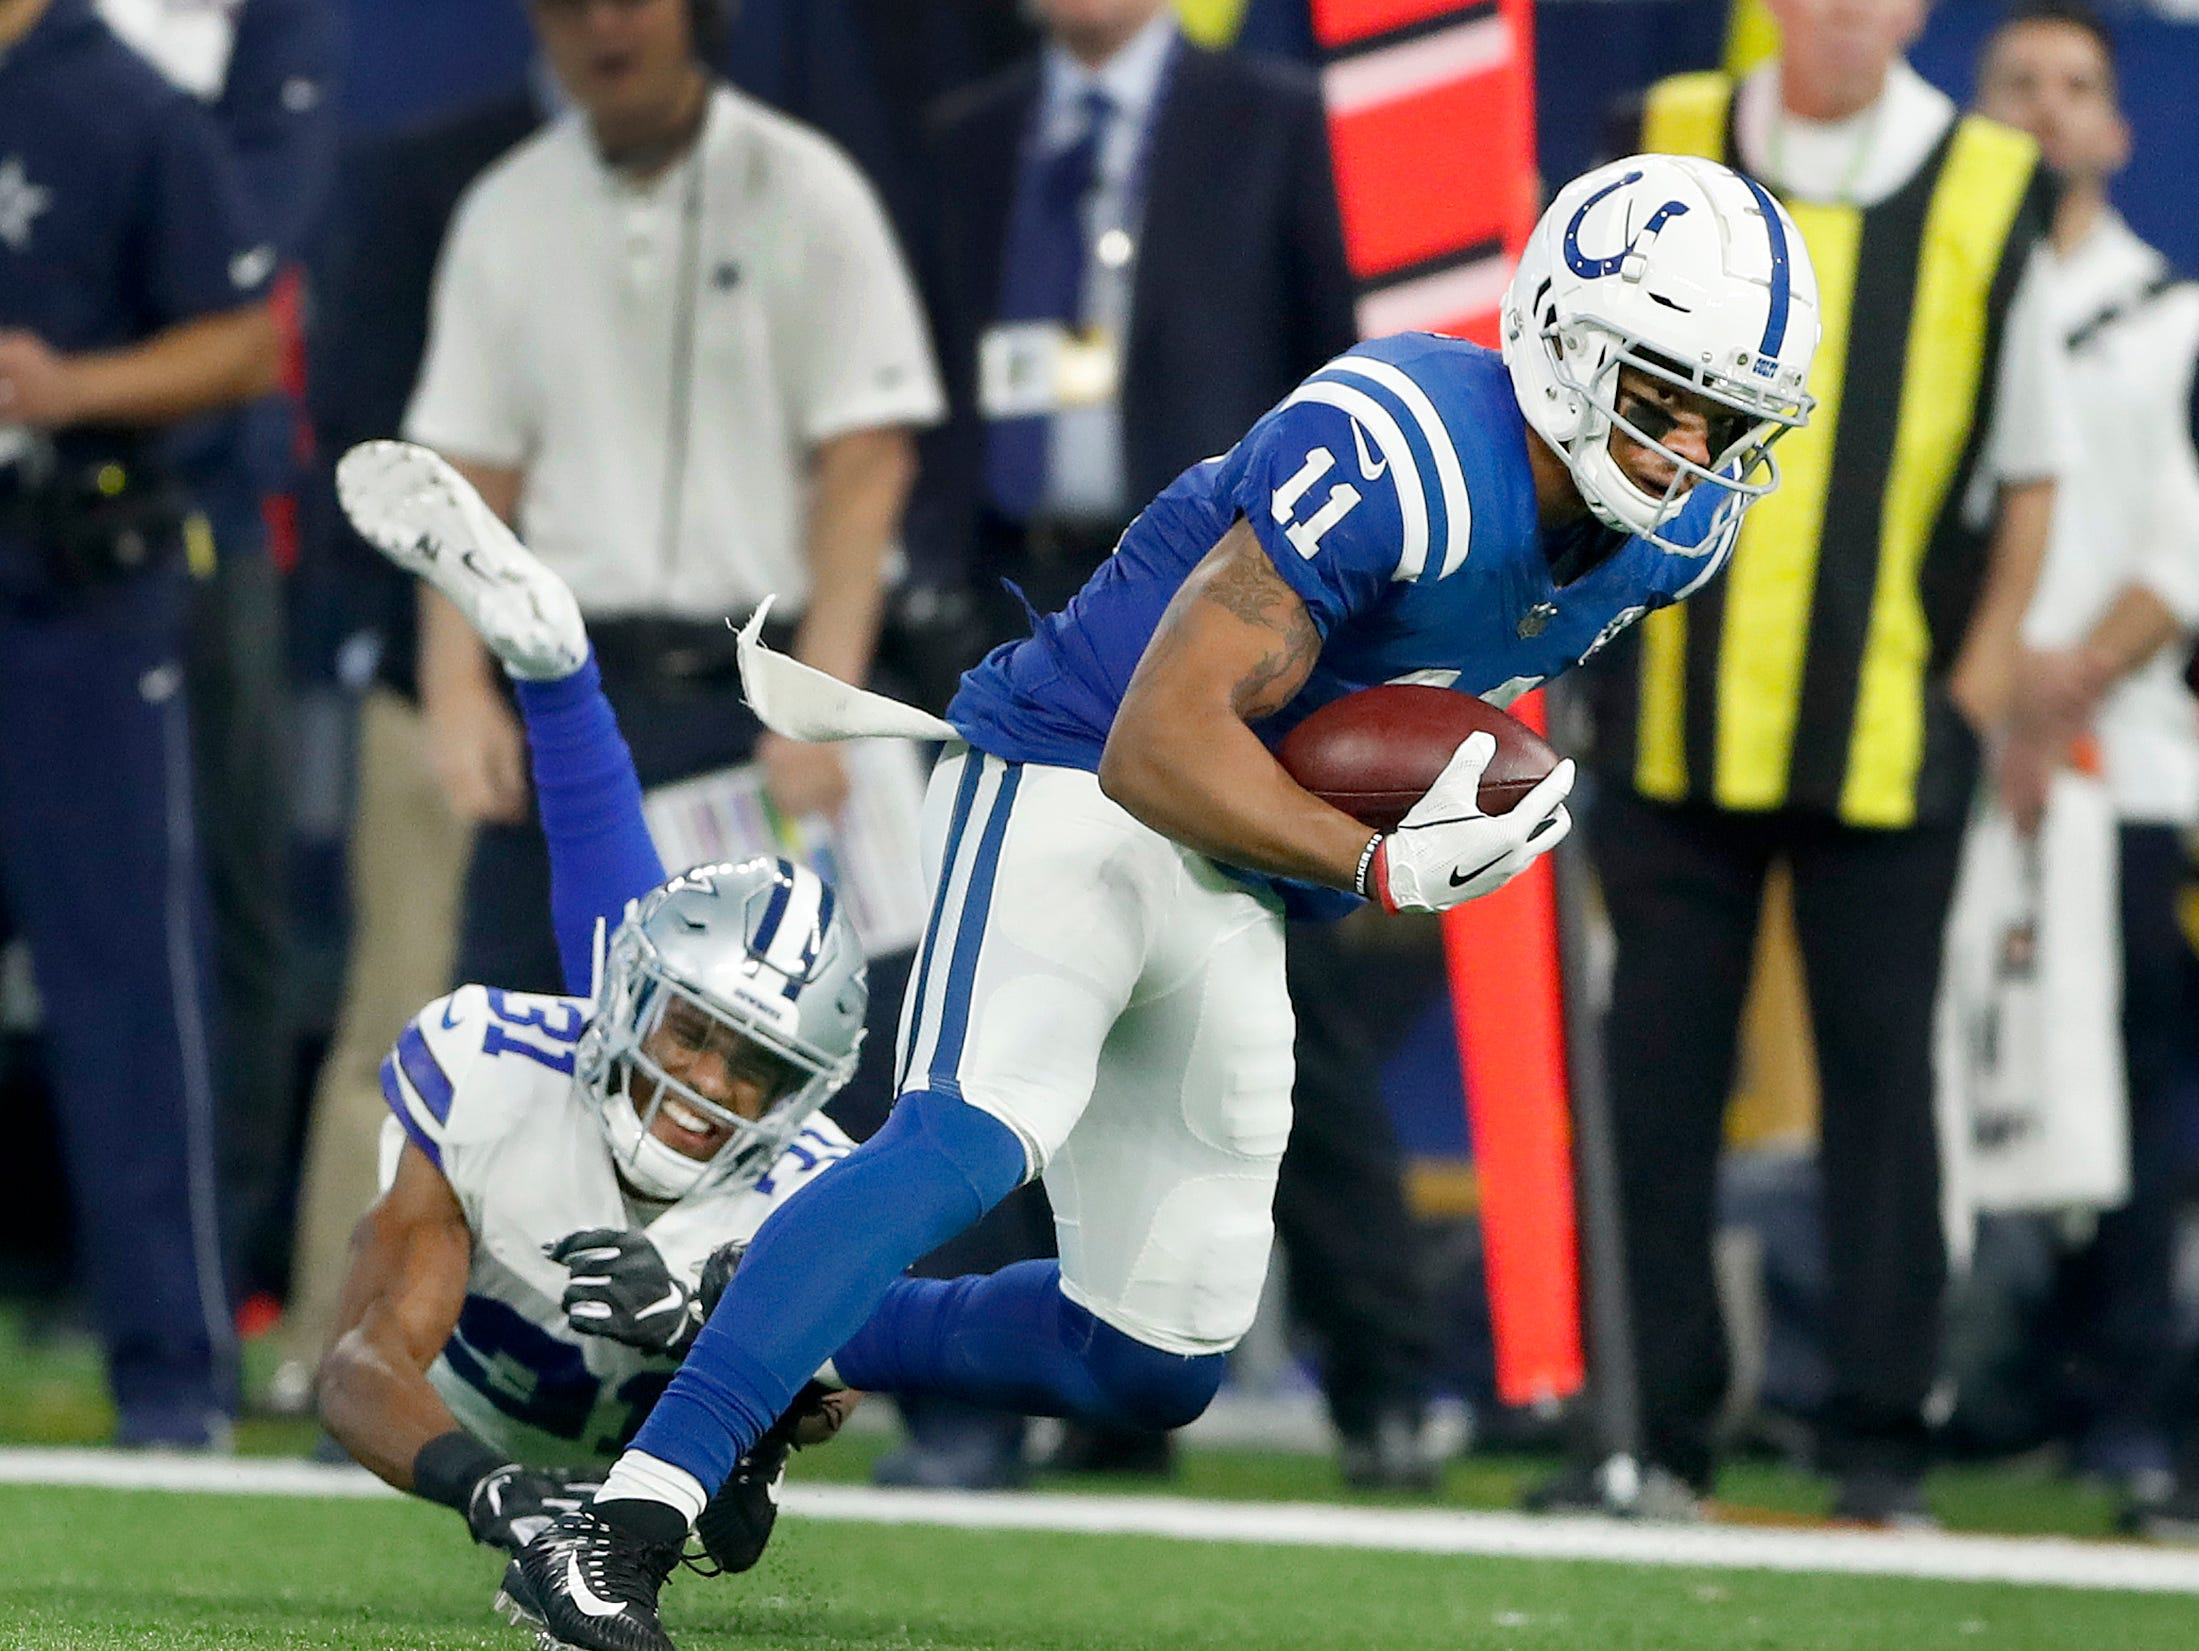 Indianapolis Colts wide receiver Ryan Grant (11) runs away from Dallas Cowboys cornerback Byron Jones (31) in the first half of their game at Lucas Oil Stadium on Sunday, Dec. 16, 2018.